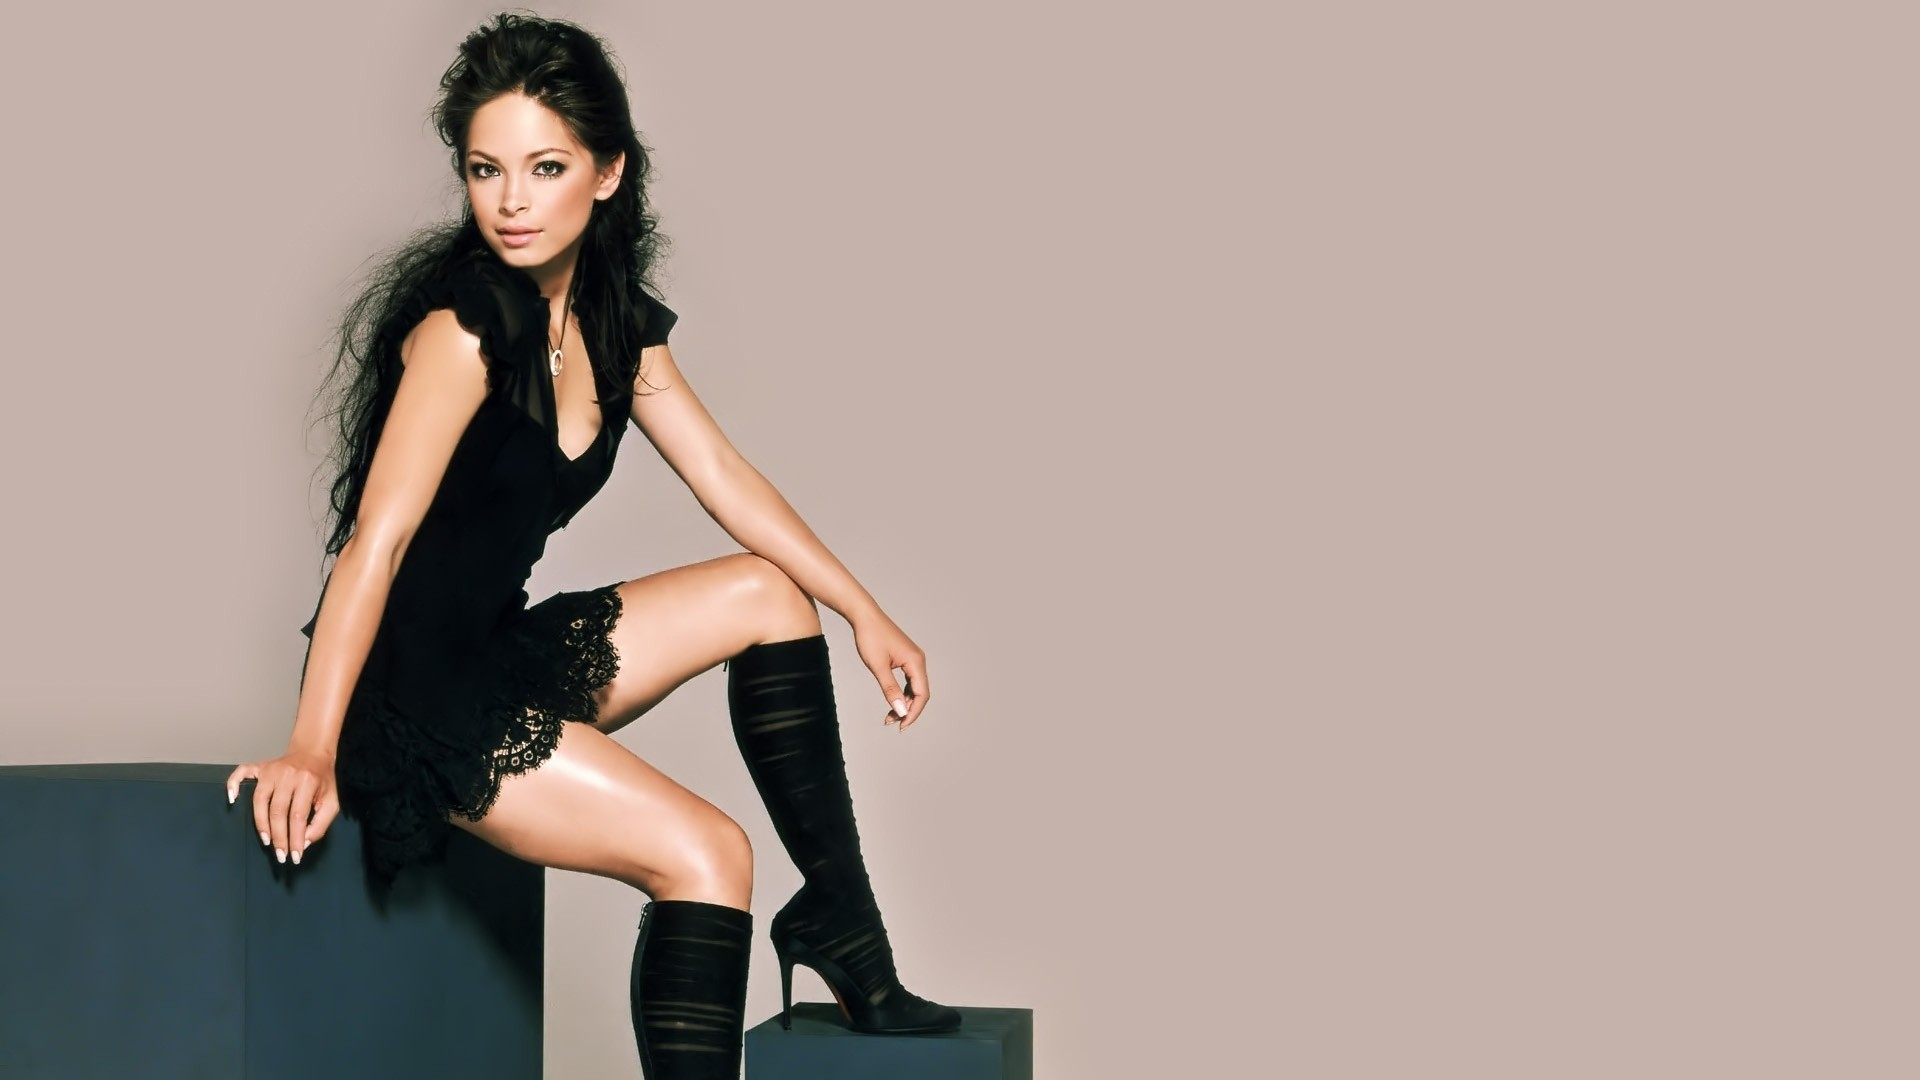 brunettes boots woman Actress HD Wallpaper